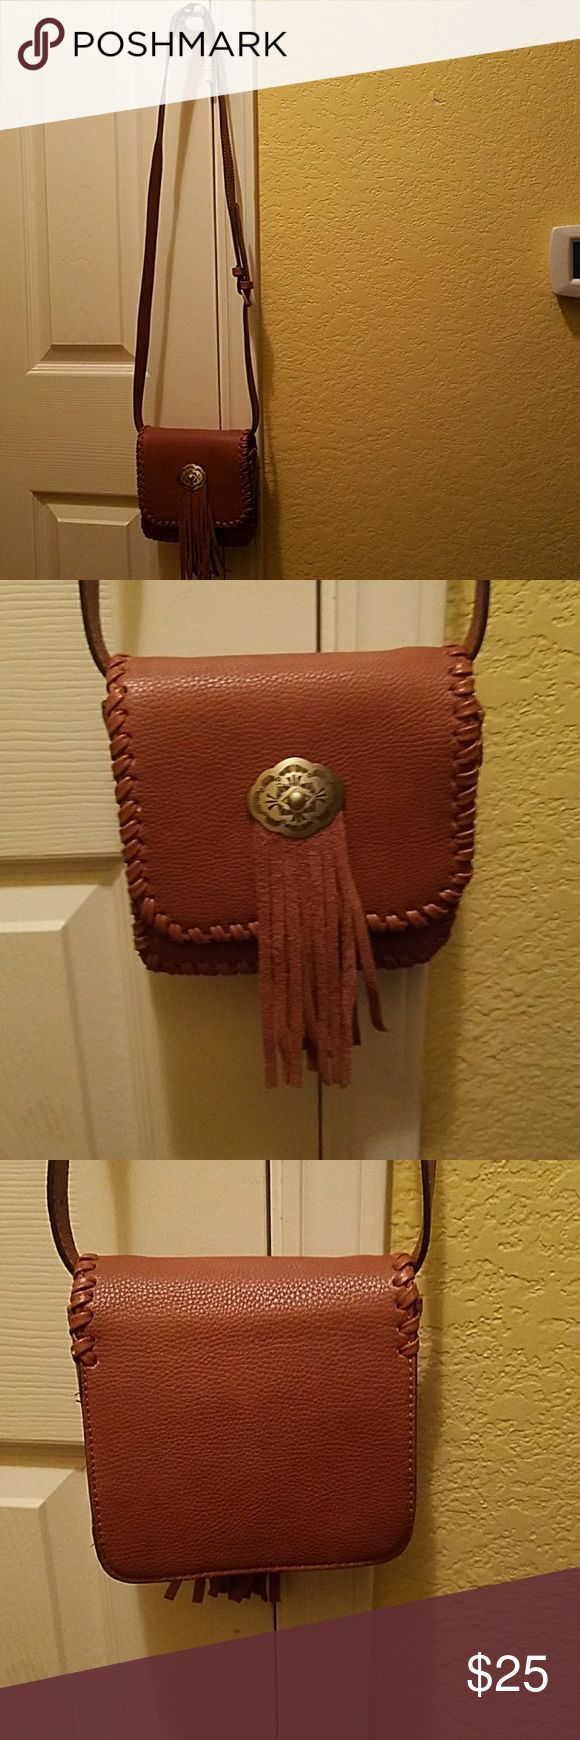 American Eagle Outfitters Mini Purse Bag is in great condition besides some minor scratches as shown in last two pictures. Bag has no pockets or zippers. Strap is adjustable. It was used one time. American Eagle Outfitters Bags Mini Bags